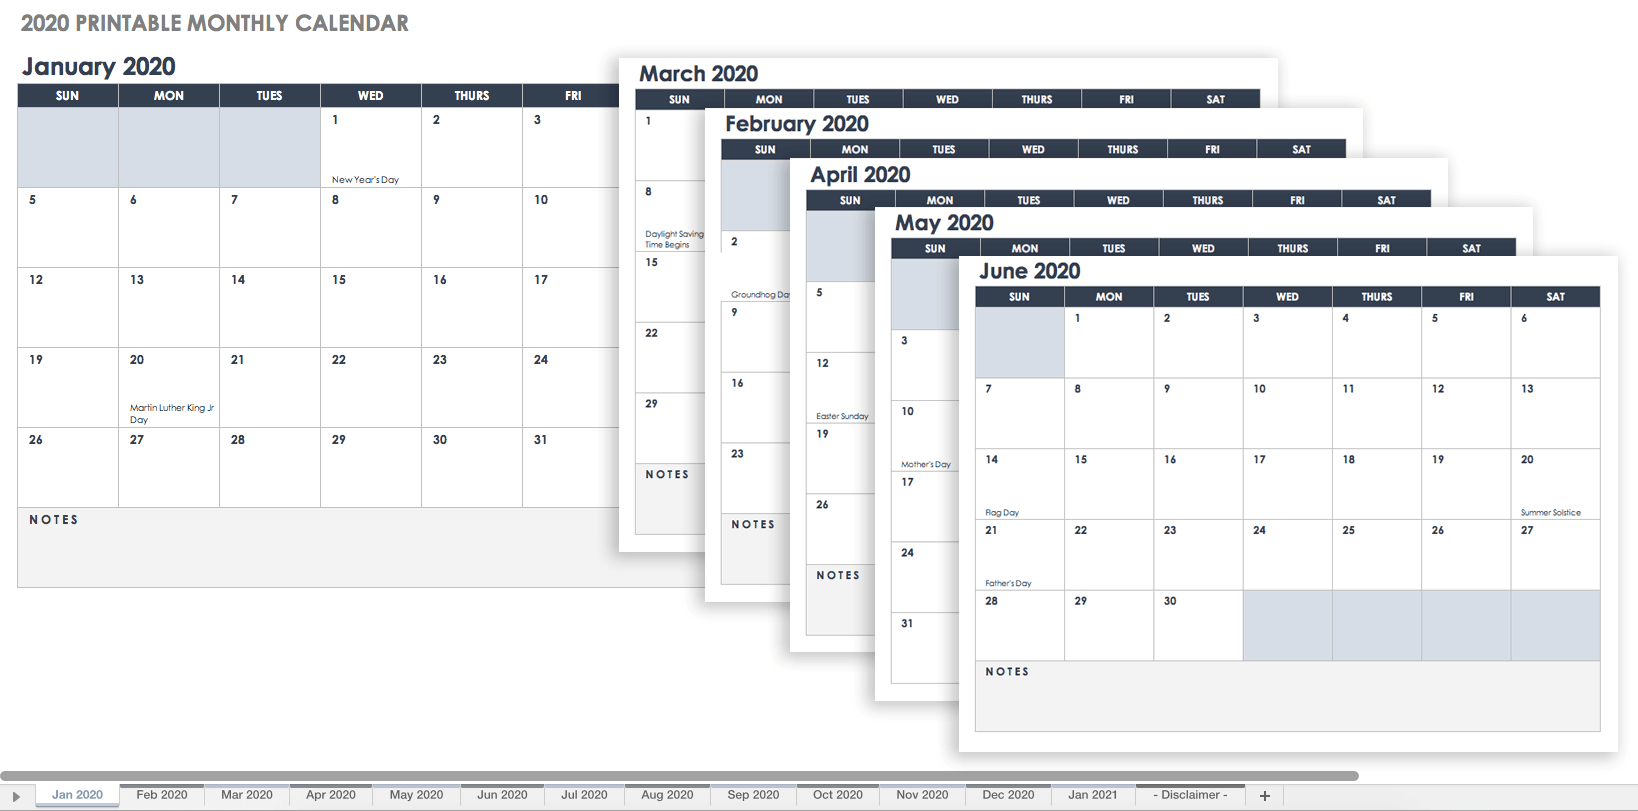 15 Free Monthly Calendar Templates | Smartsheet for Printable Month To Month Clalanders Wityh Lines 2019/2020